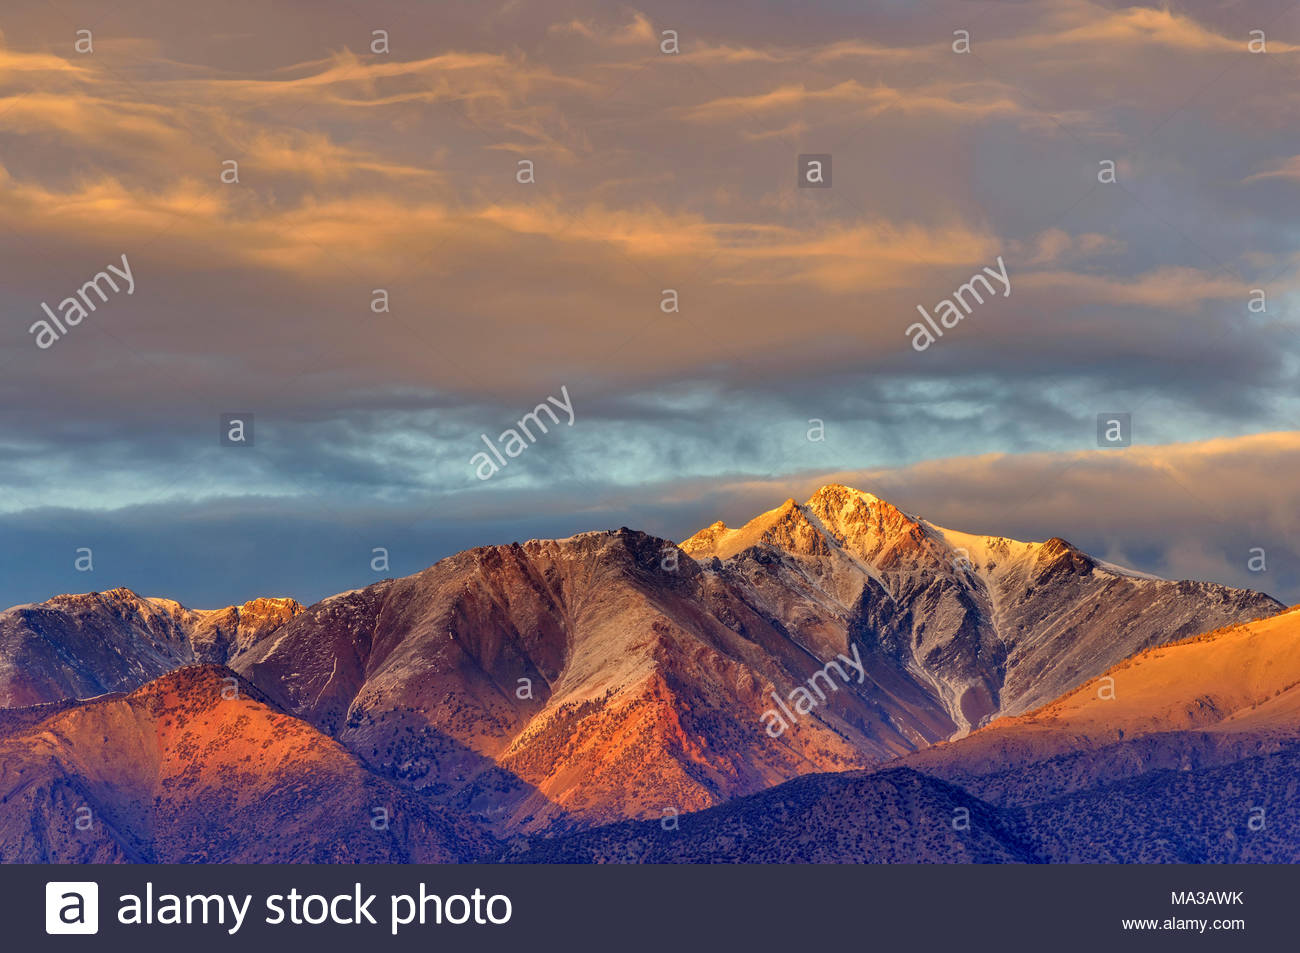 White Mountain from the Volcanic Tablelands, Inyo National Forest, Inyo County, Caifornia - Stock Image